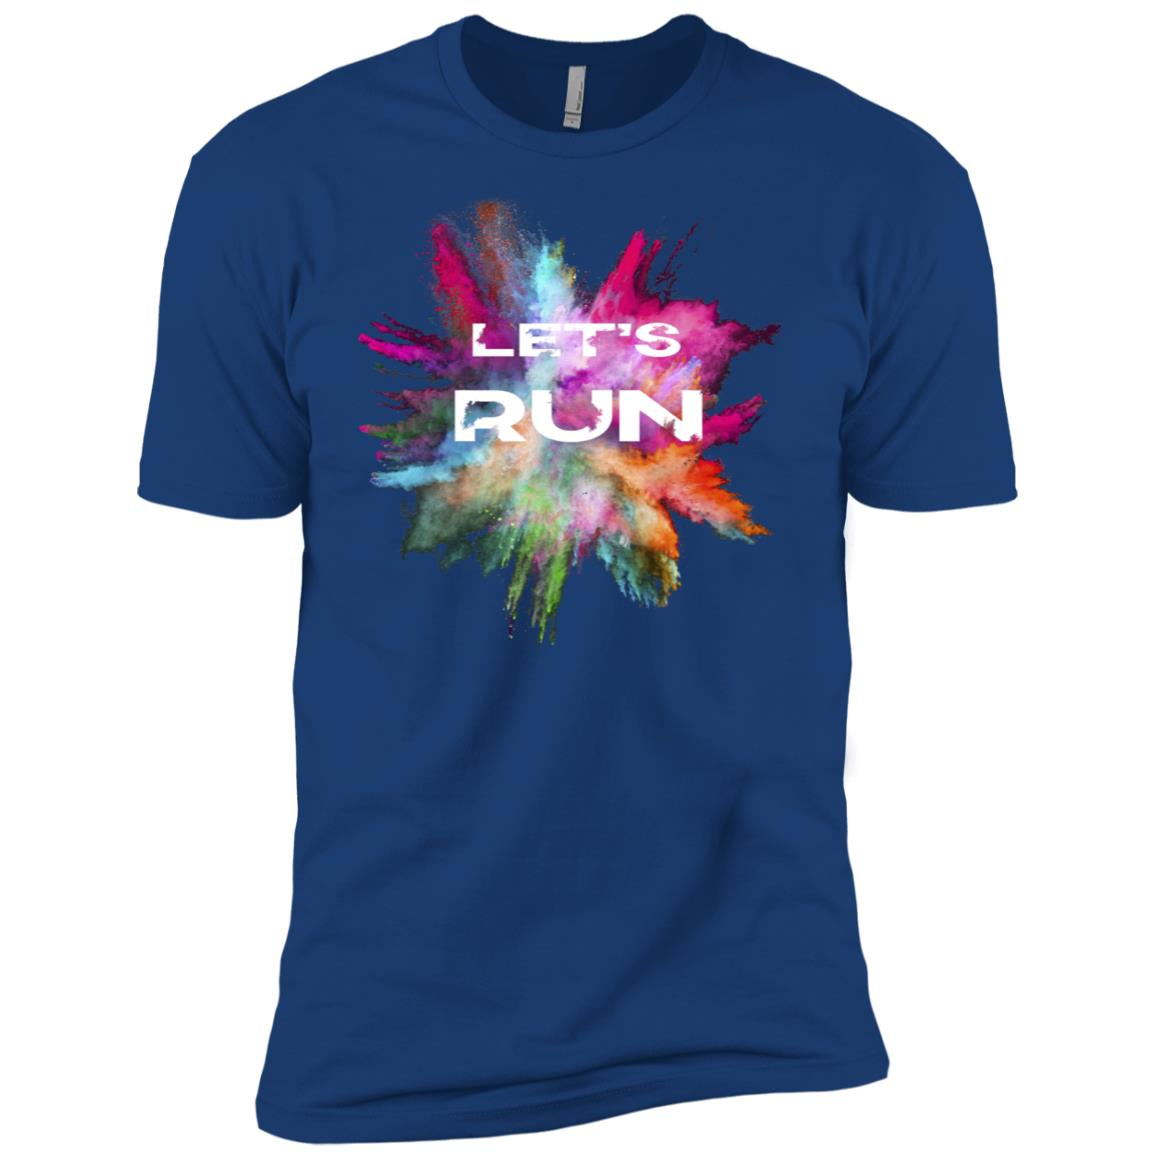 Graphic Running Tee Tops with Saying Colorful Men Short Sleeve T-Shirt